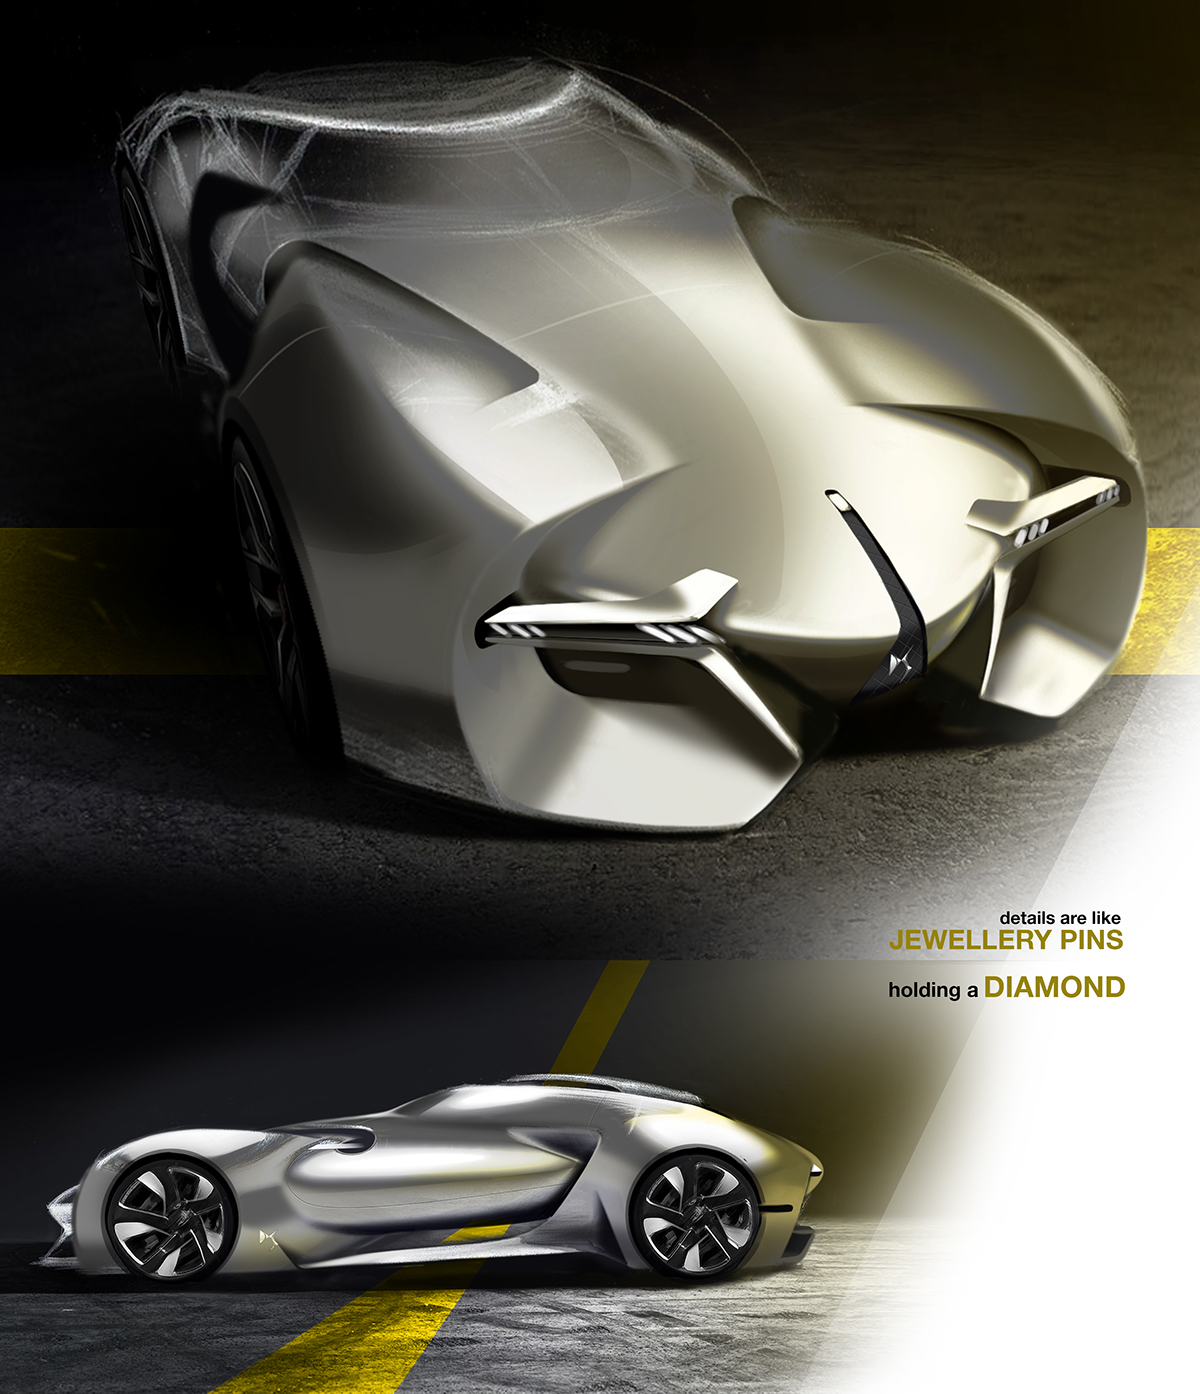 Sketches of the Future Concept Cars